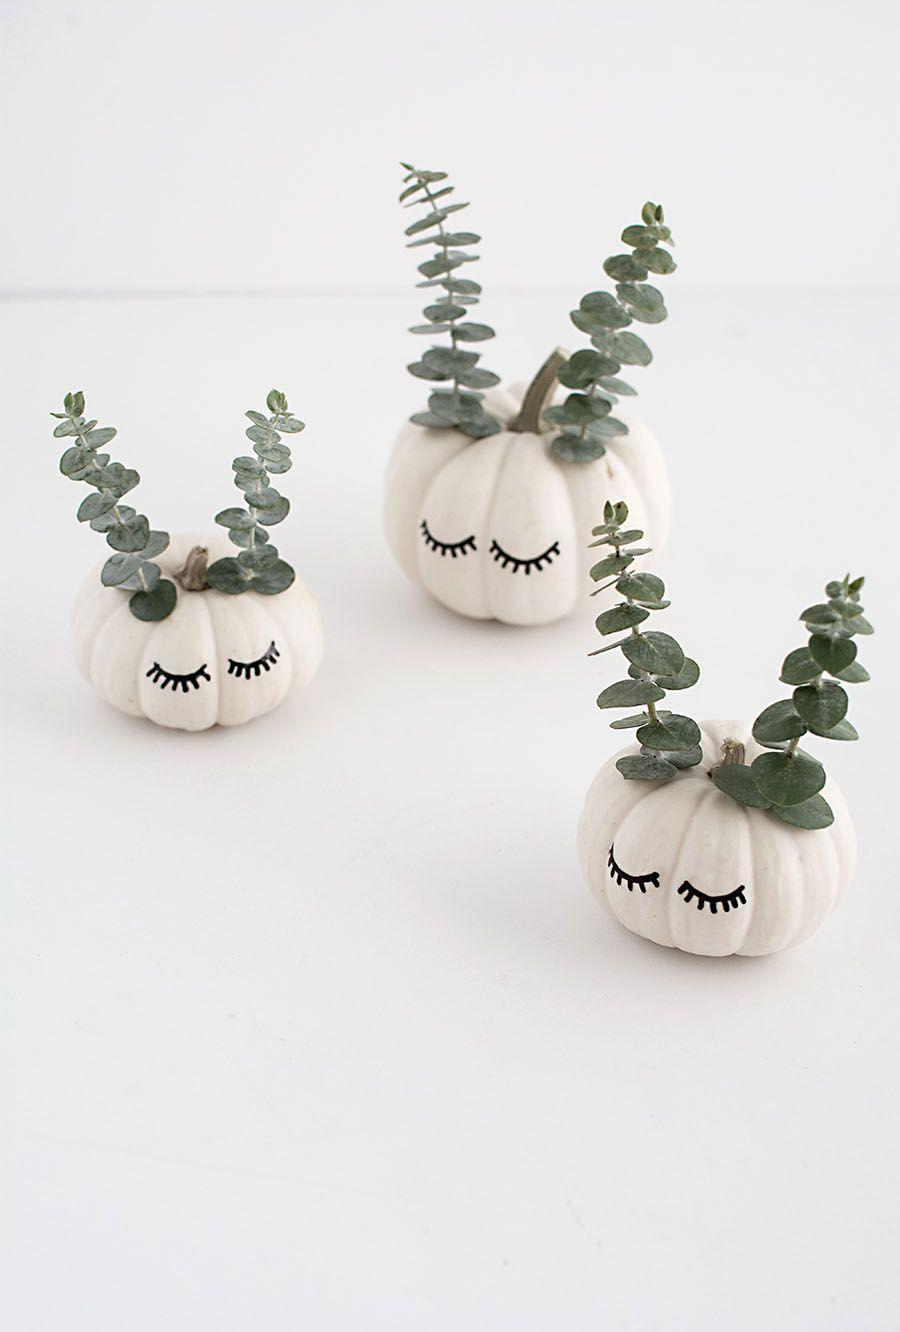 """<p>These modern mini pumpkins can make a statement in any room of the house, especially with sprigs of eucalyptus designed to look like animal antlers or ears. </p><p><strong>Get the tutorial at <a href=""""https://www.homeyohmy.com/diy-cute-faced-mini-pumpkins/"""" rel=""""nofollow noopener"""" target=""""_blank"""" data-ylk=""""slk:Homey Oh My"""" class=""""link rapid-noclick-resp"""">Homey Oh My</a>.</strong> </p>"""